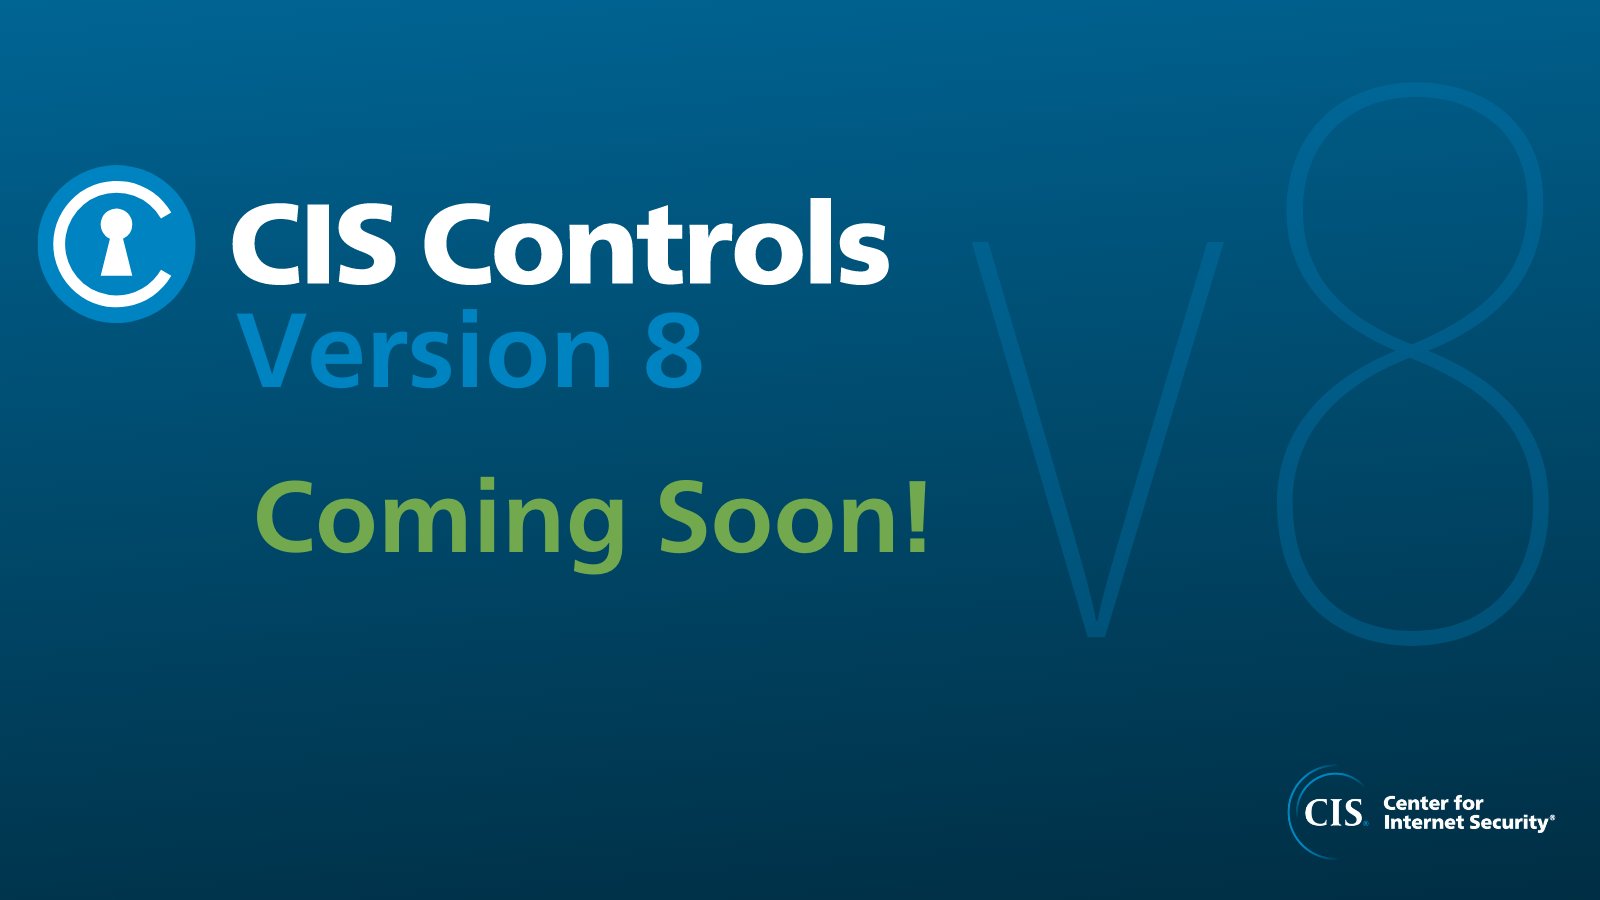 CIS-Controls-v8-Coming-Soon.png